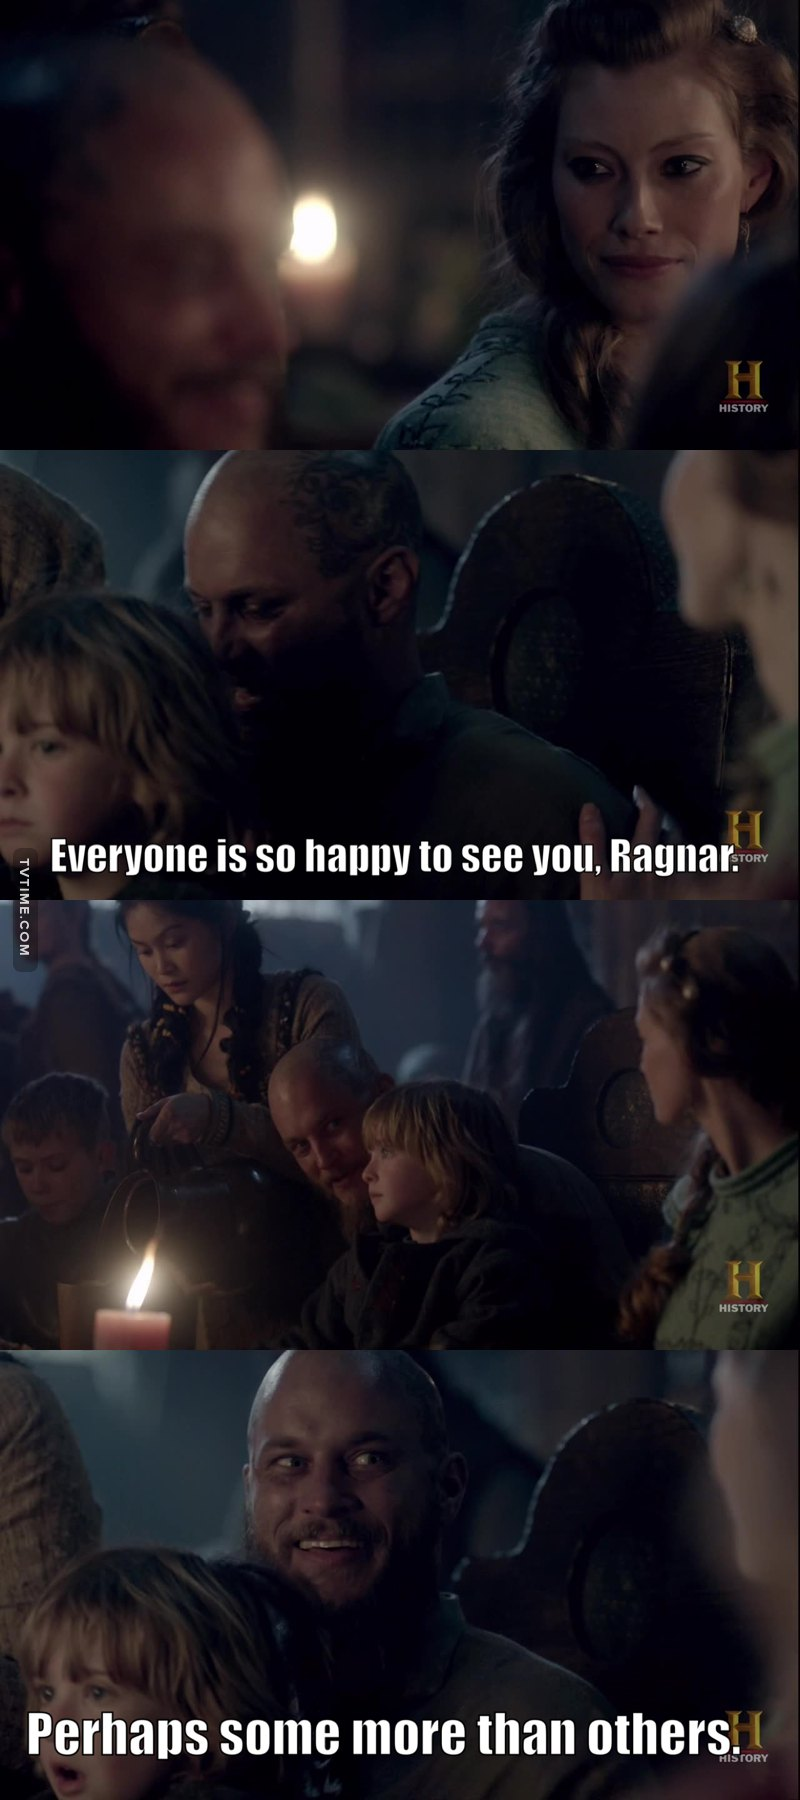 Ragnar knows a bullshitter when he sees one!